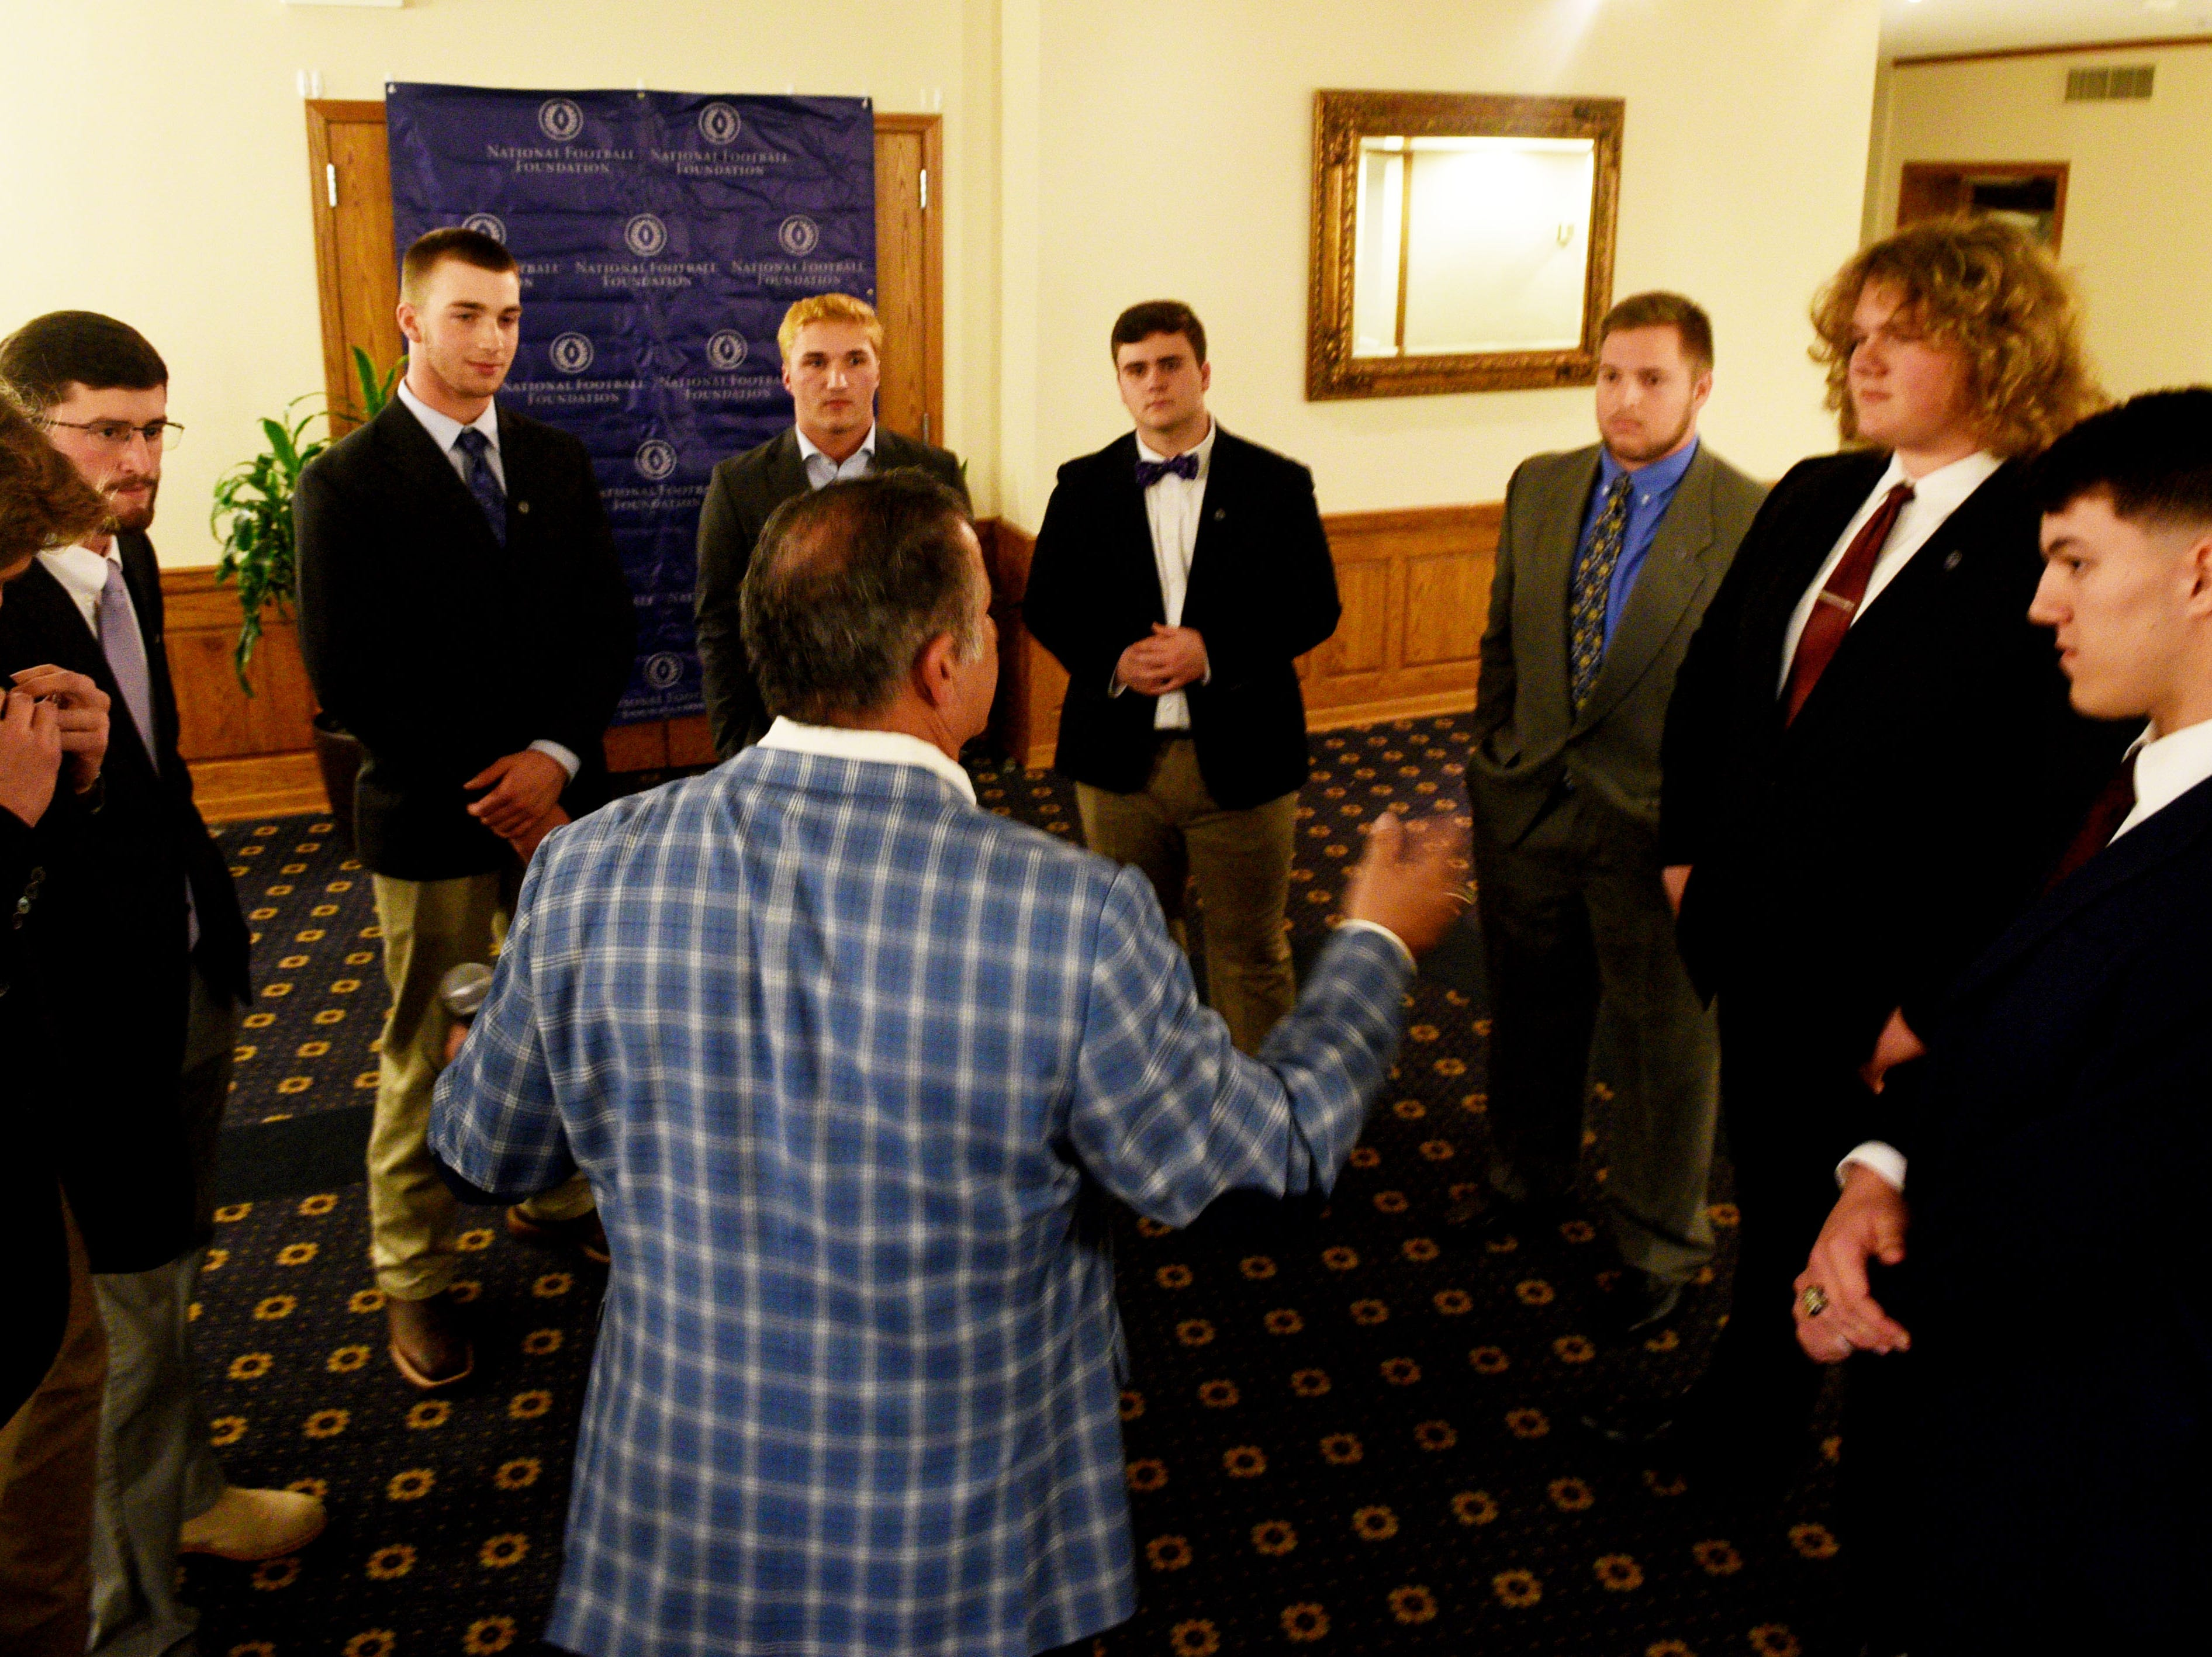 Sam McNaughton Chapter of the National Football Foundation honors 9 area athletes, Tag Rome and Brandon Landry during the Thursday evening Scholar Athlete Awards Banquet at the East Ridge Country Club.